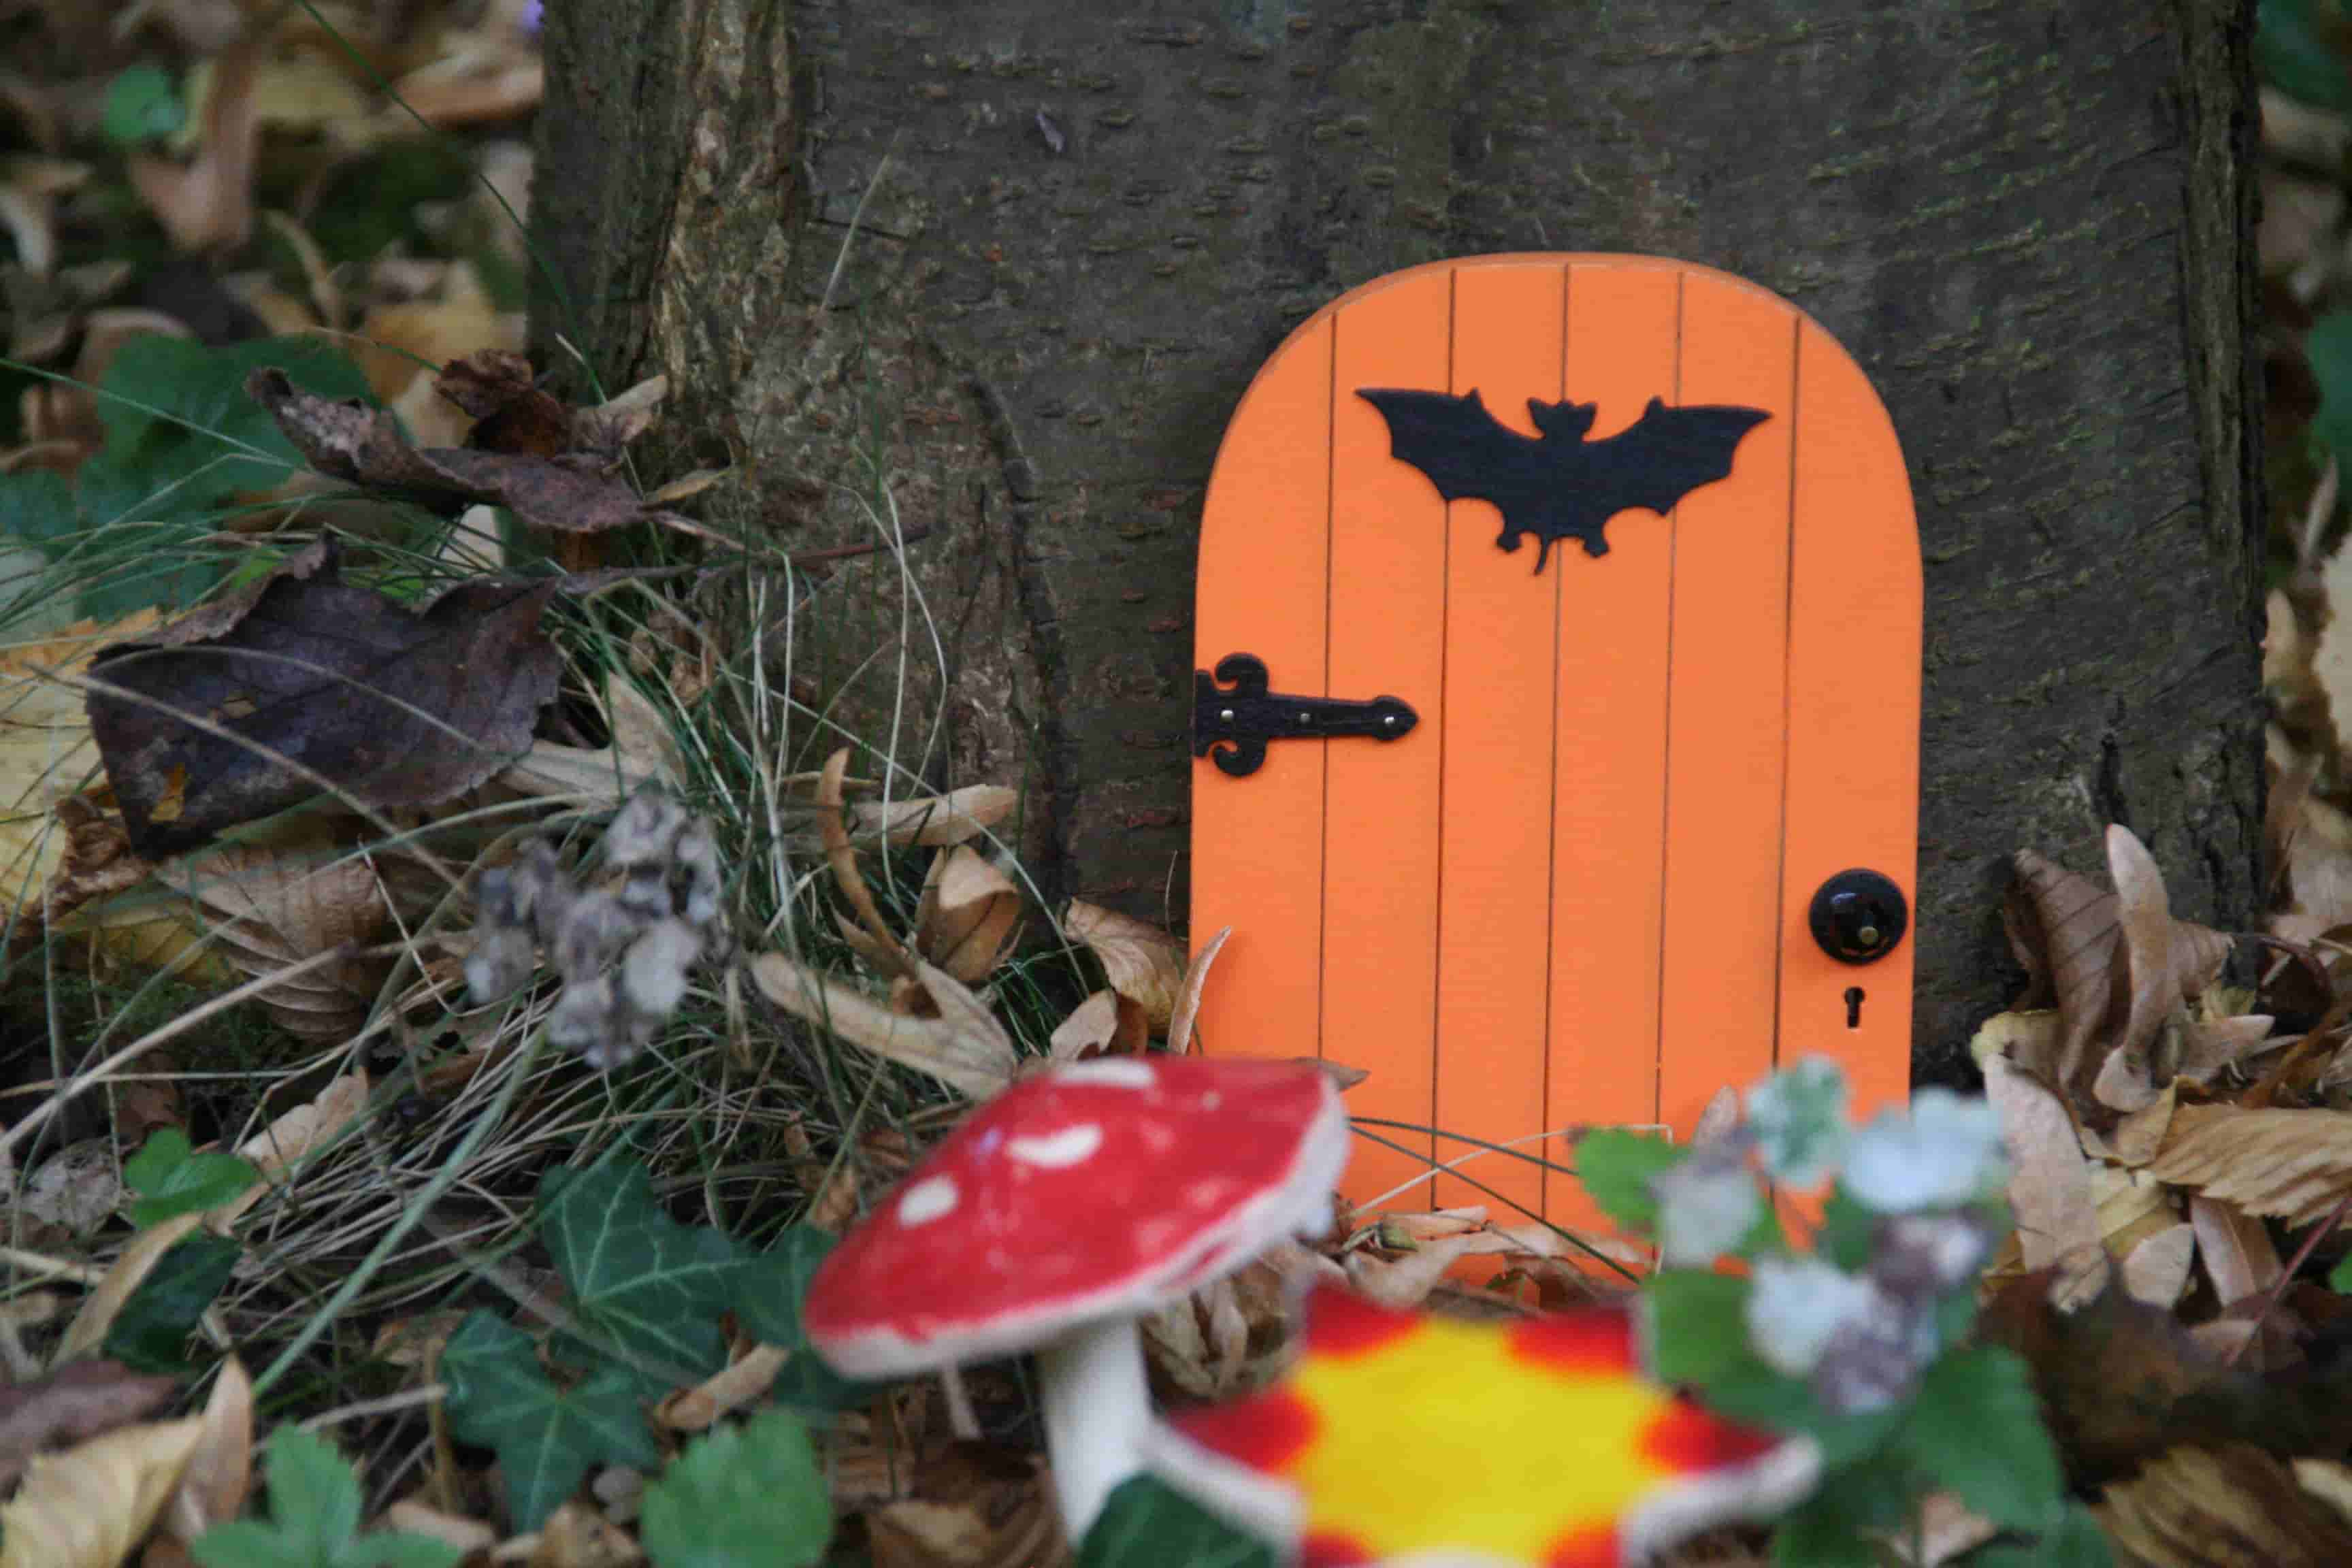 orange fairy door and mini flowers and toadstools against a tree trunk